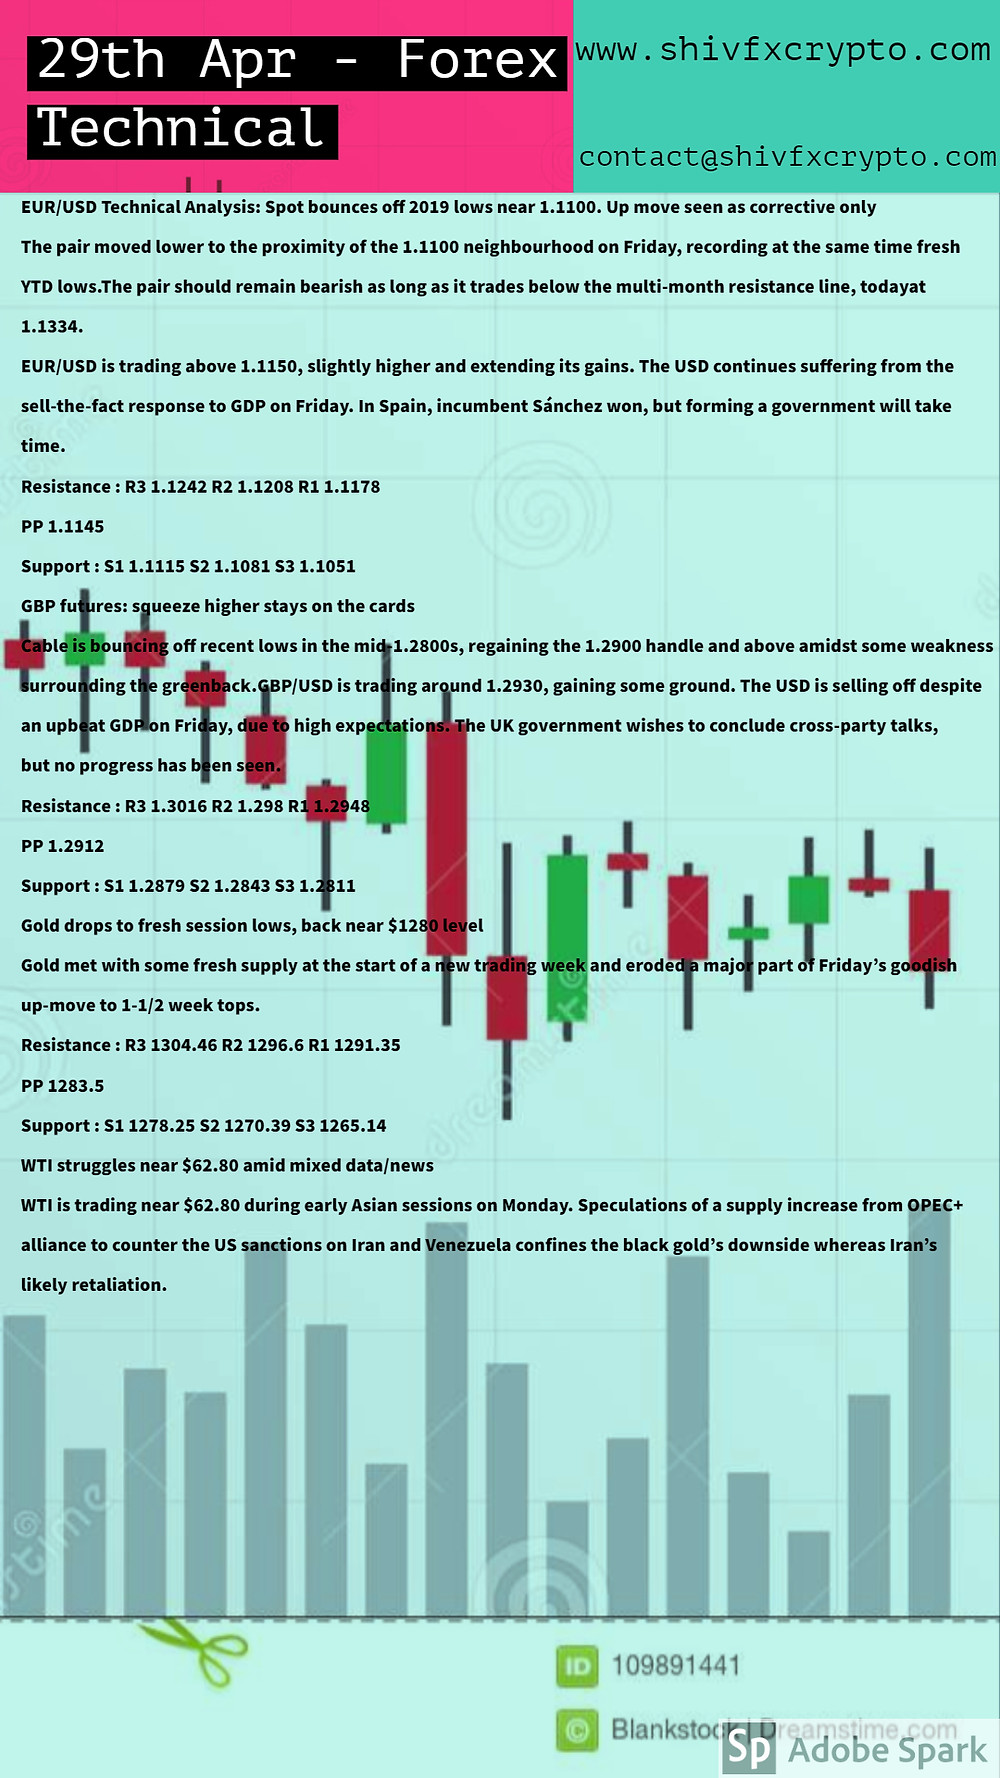 Forex Technical & Market Watch